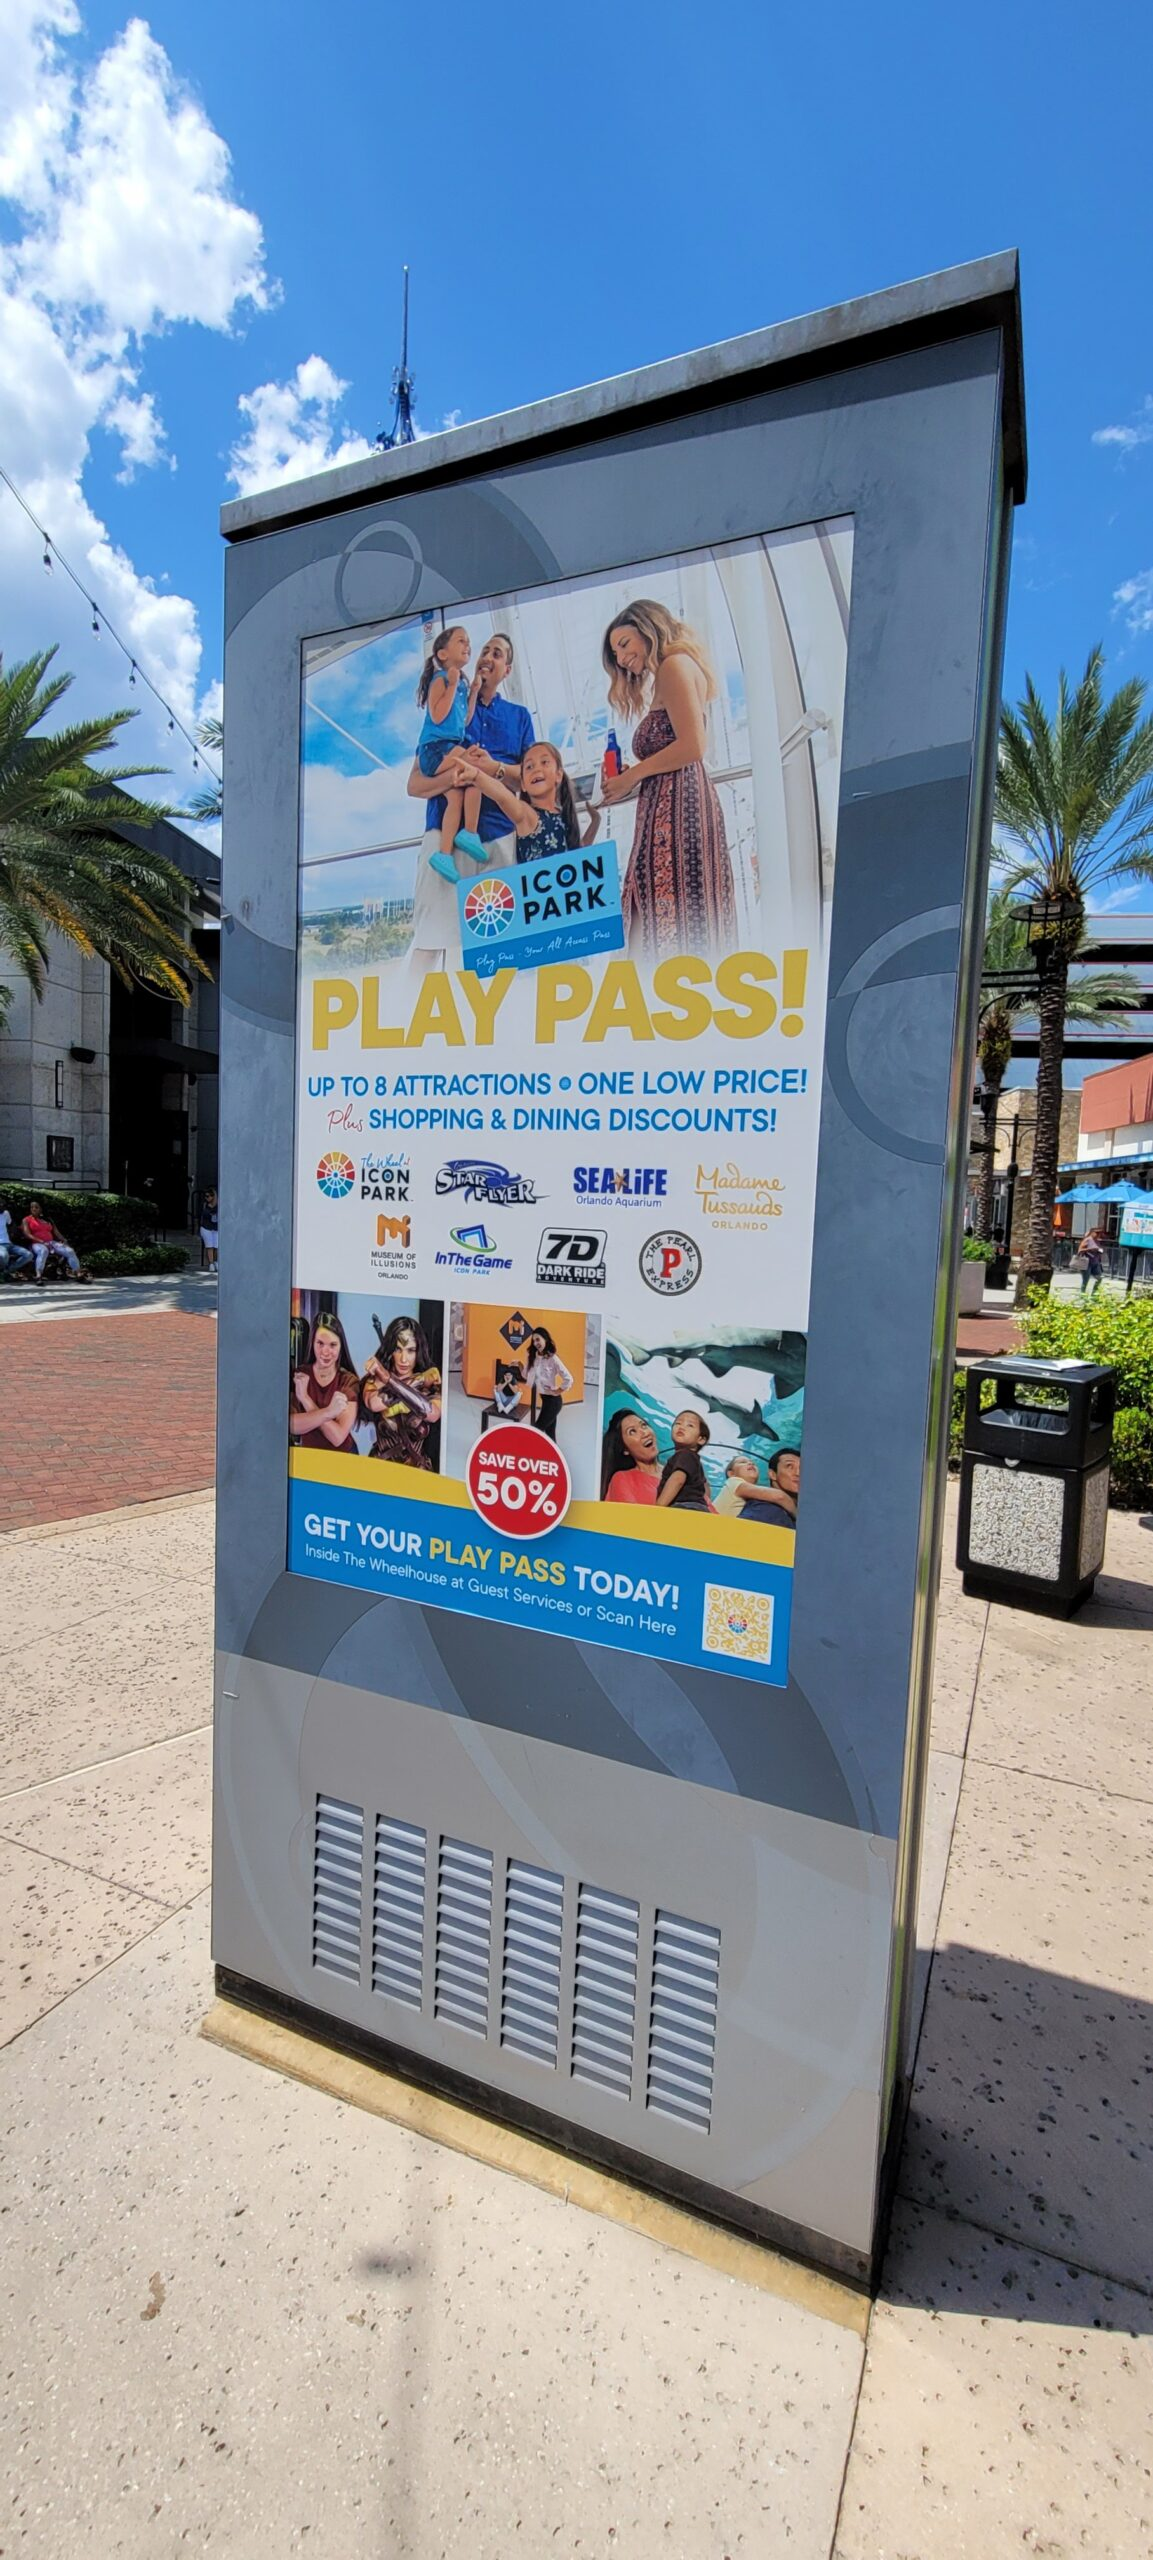 Have a family fun day at ICON Park in Orlando 4